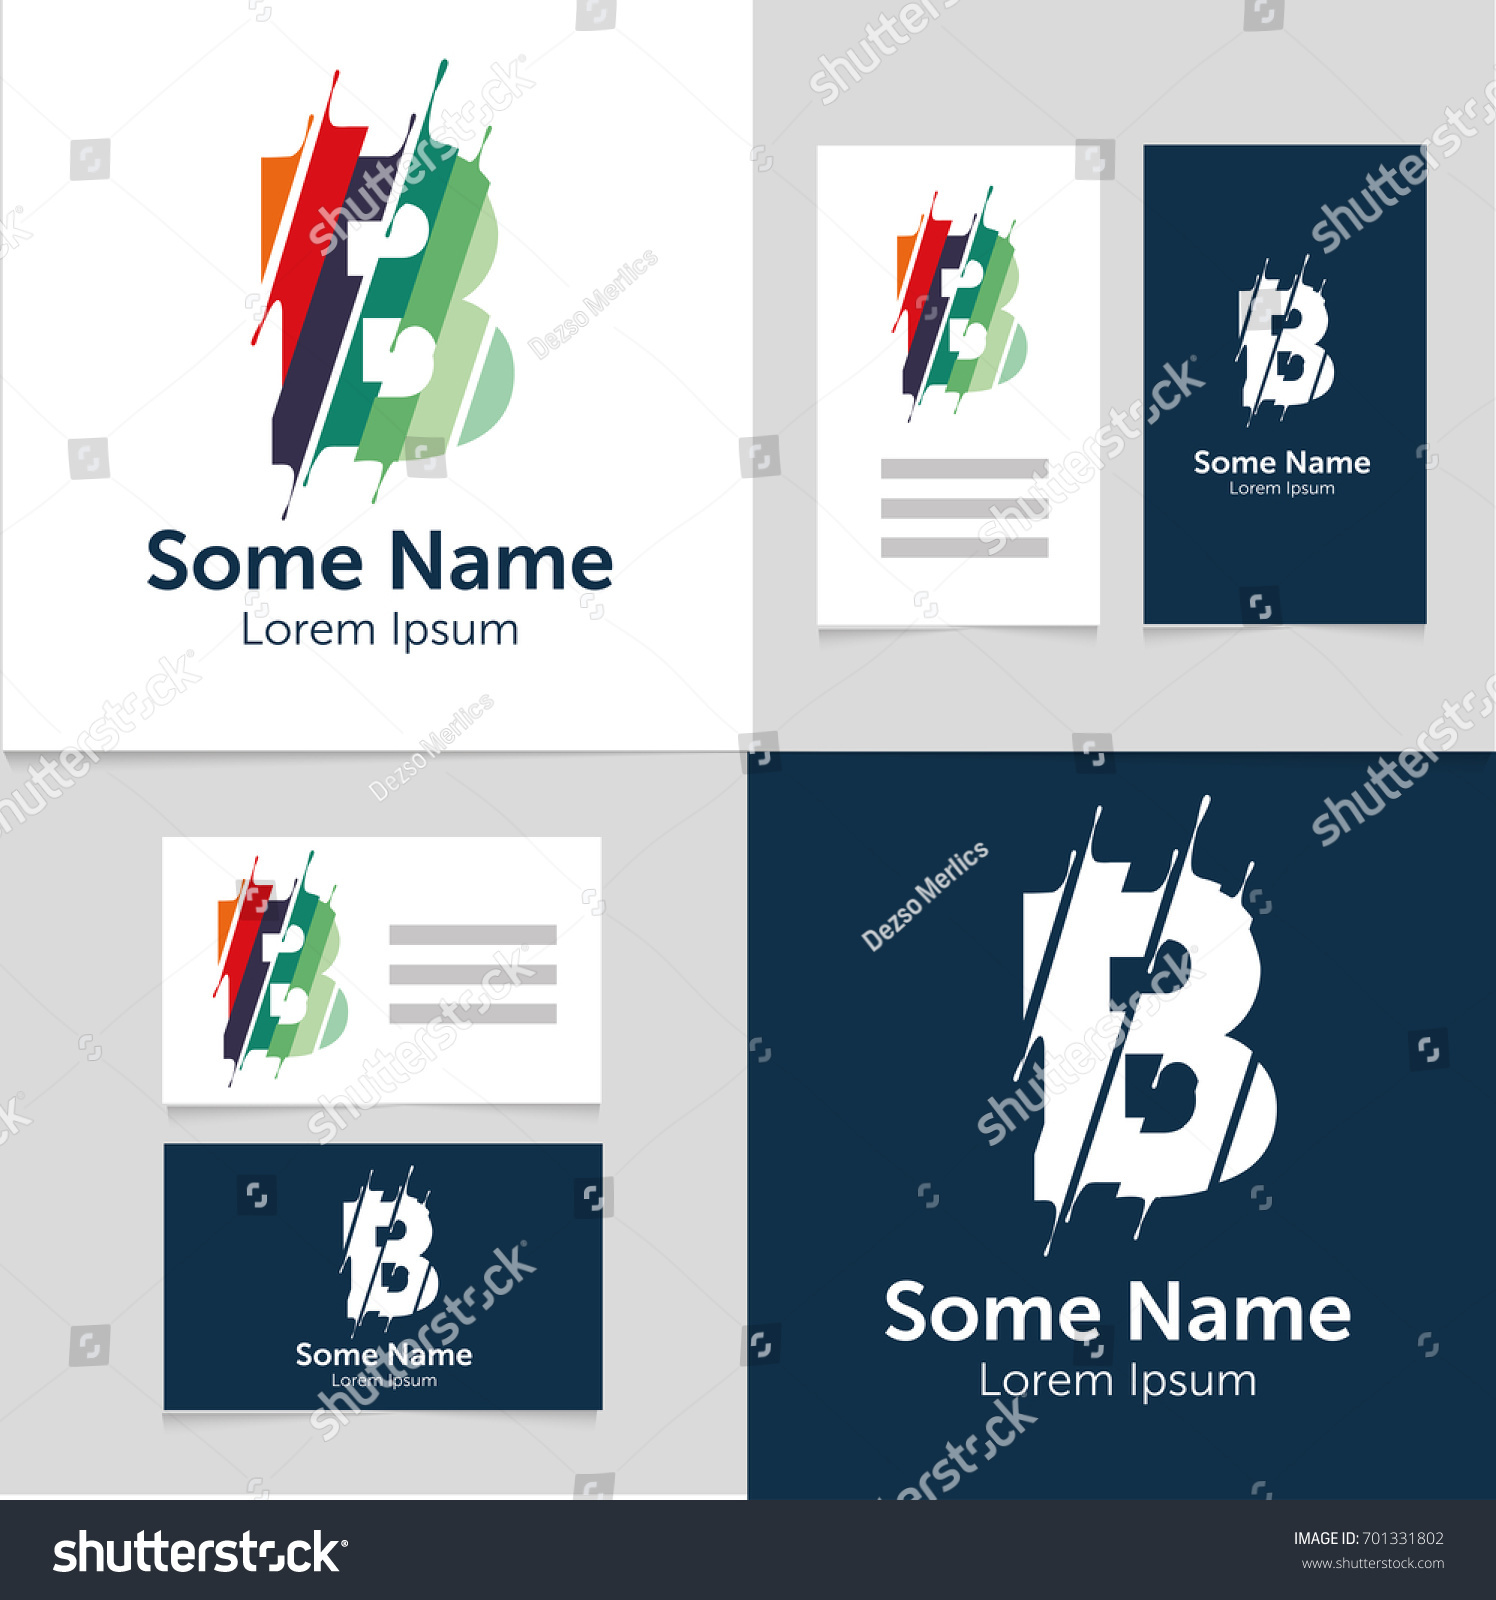 Editable business card template b letter stock vector royalty free editable business card template with b letter logoctor illustrationeps10 friedricerecipe Gallery